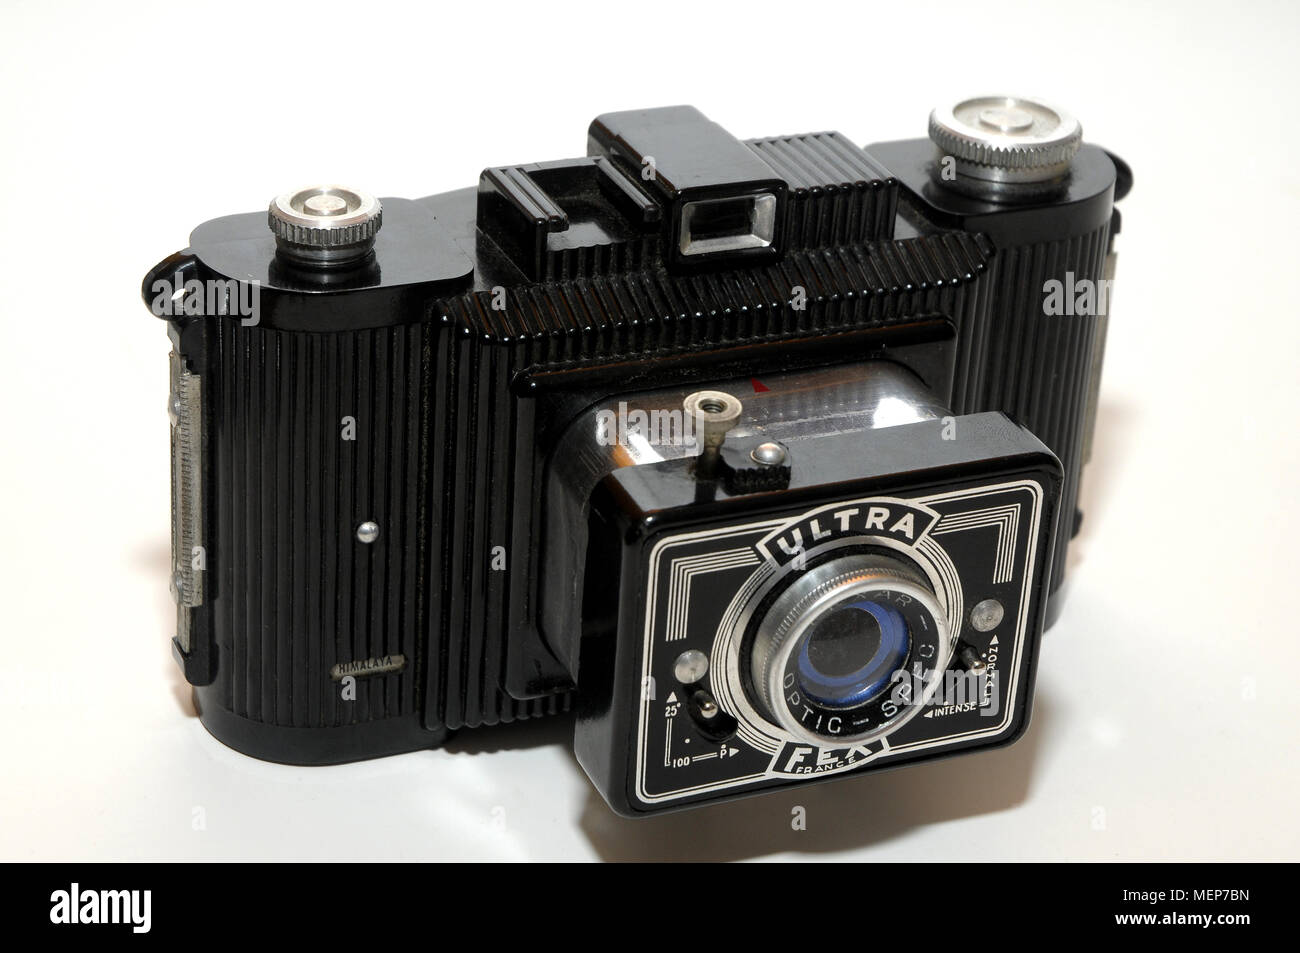 The Ultra Fex is a black bakelite camera made in France by Fex/Indo, circa 1946-66. It produces 6x9cm images on 120 film. - Stock Image